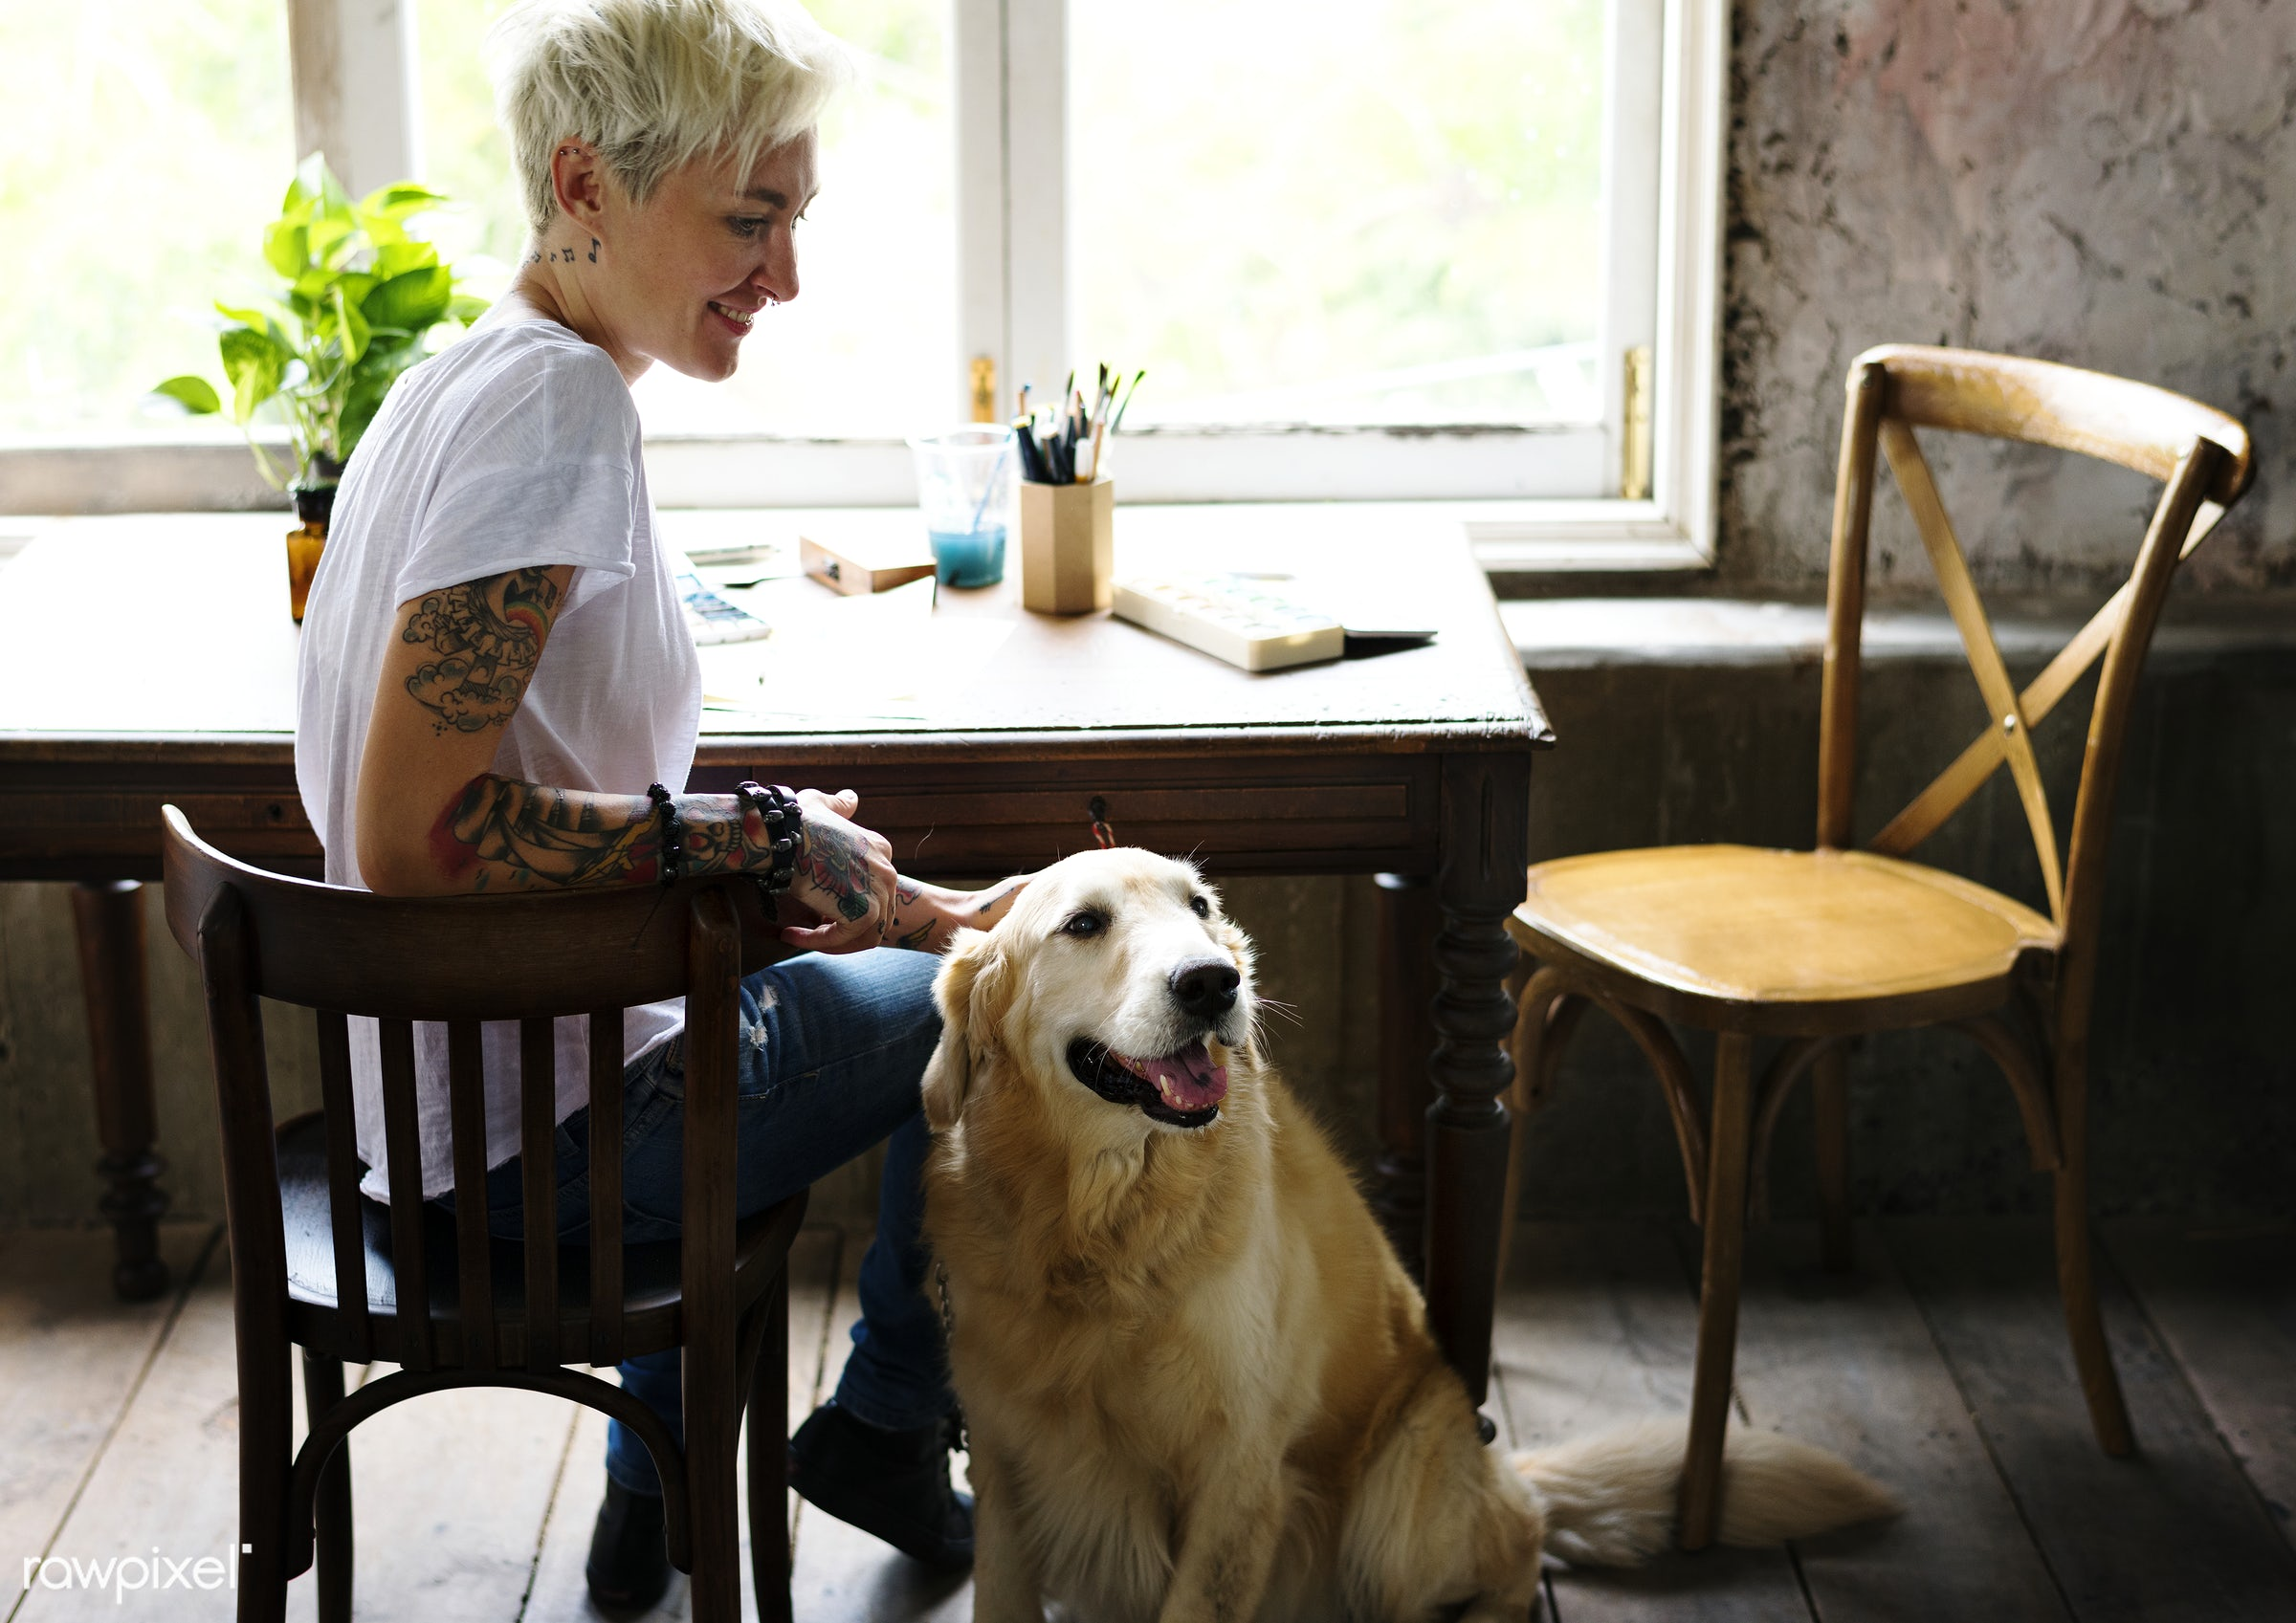 Woman and golden retriever dog relaxing  - tattoo, woman, girl, sitting, chair, table, desk, workspace, dog, pet, animal,...